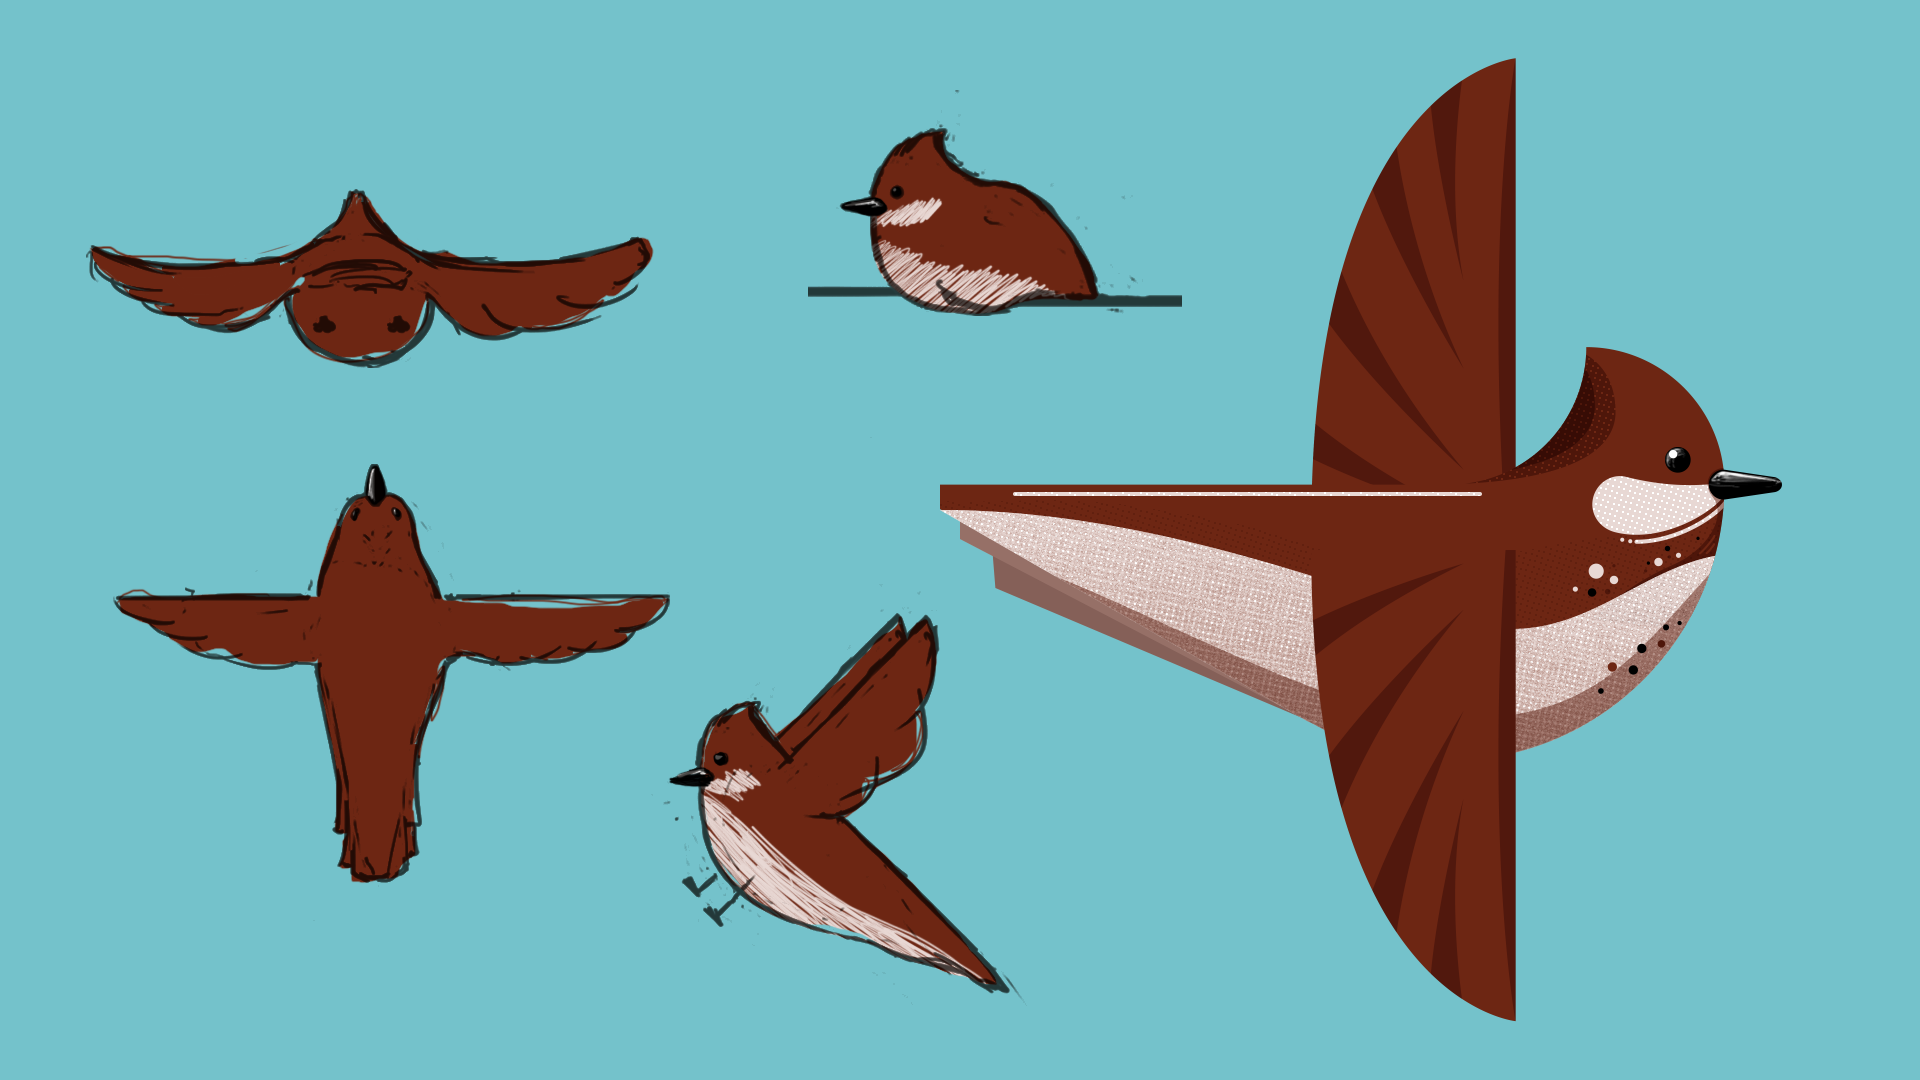 Bird sketches and design, by Tyler